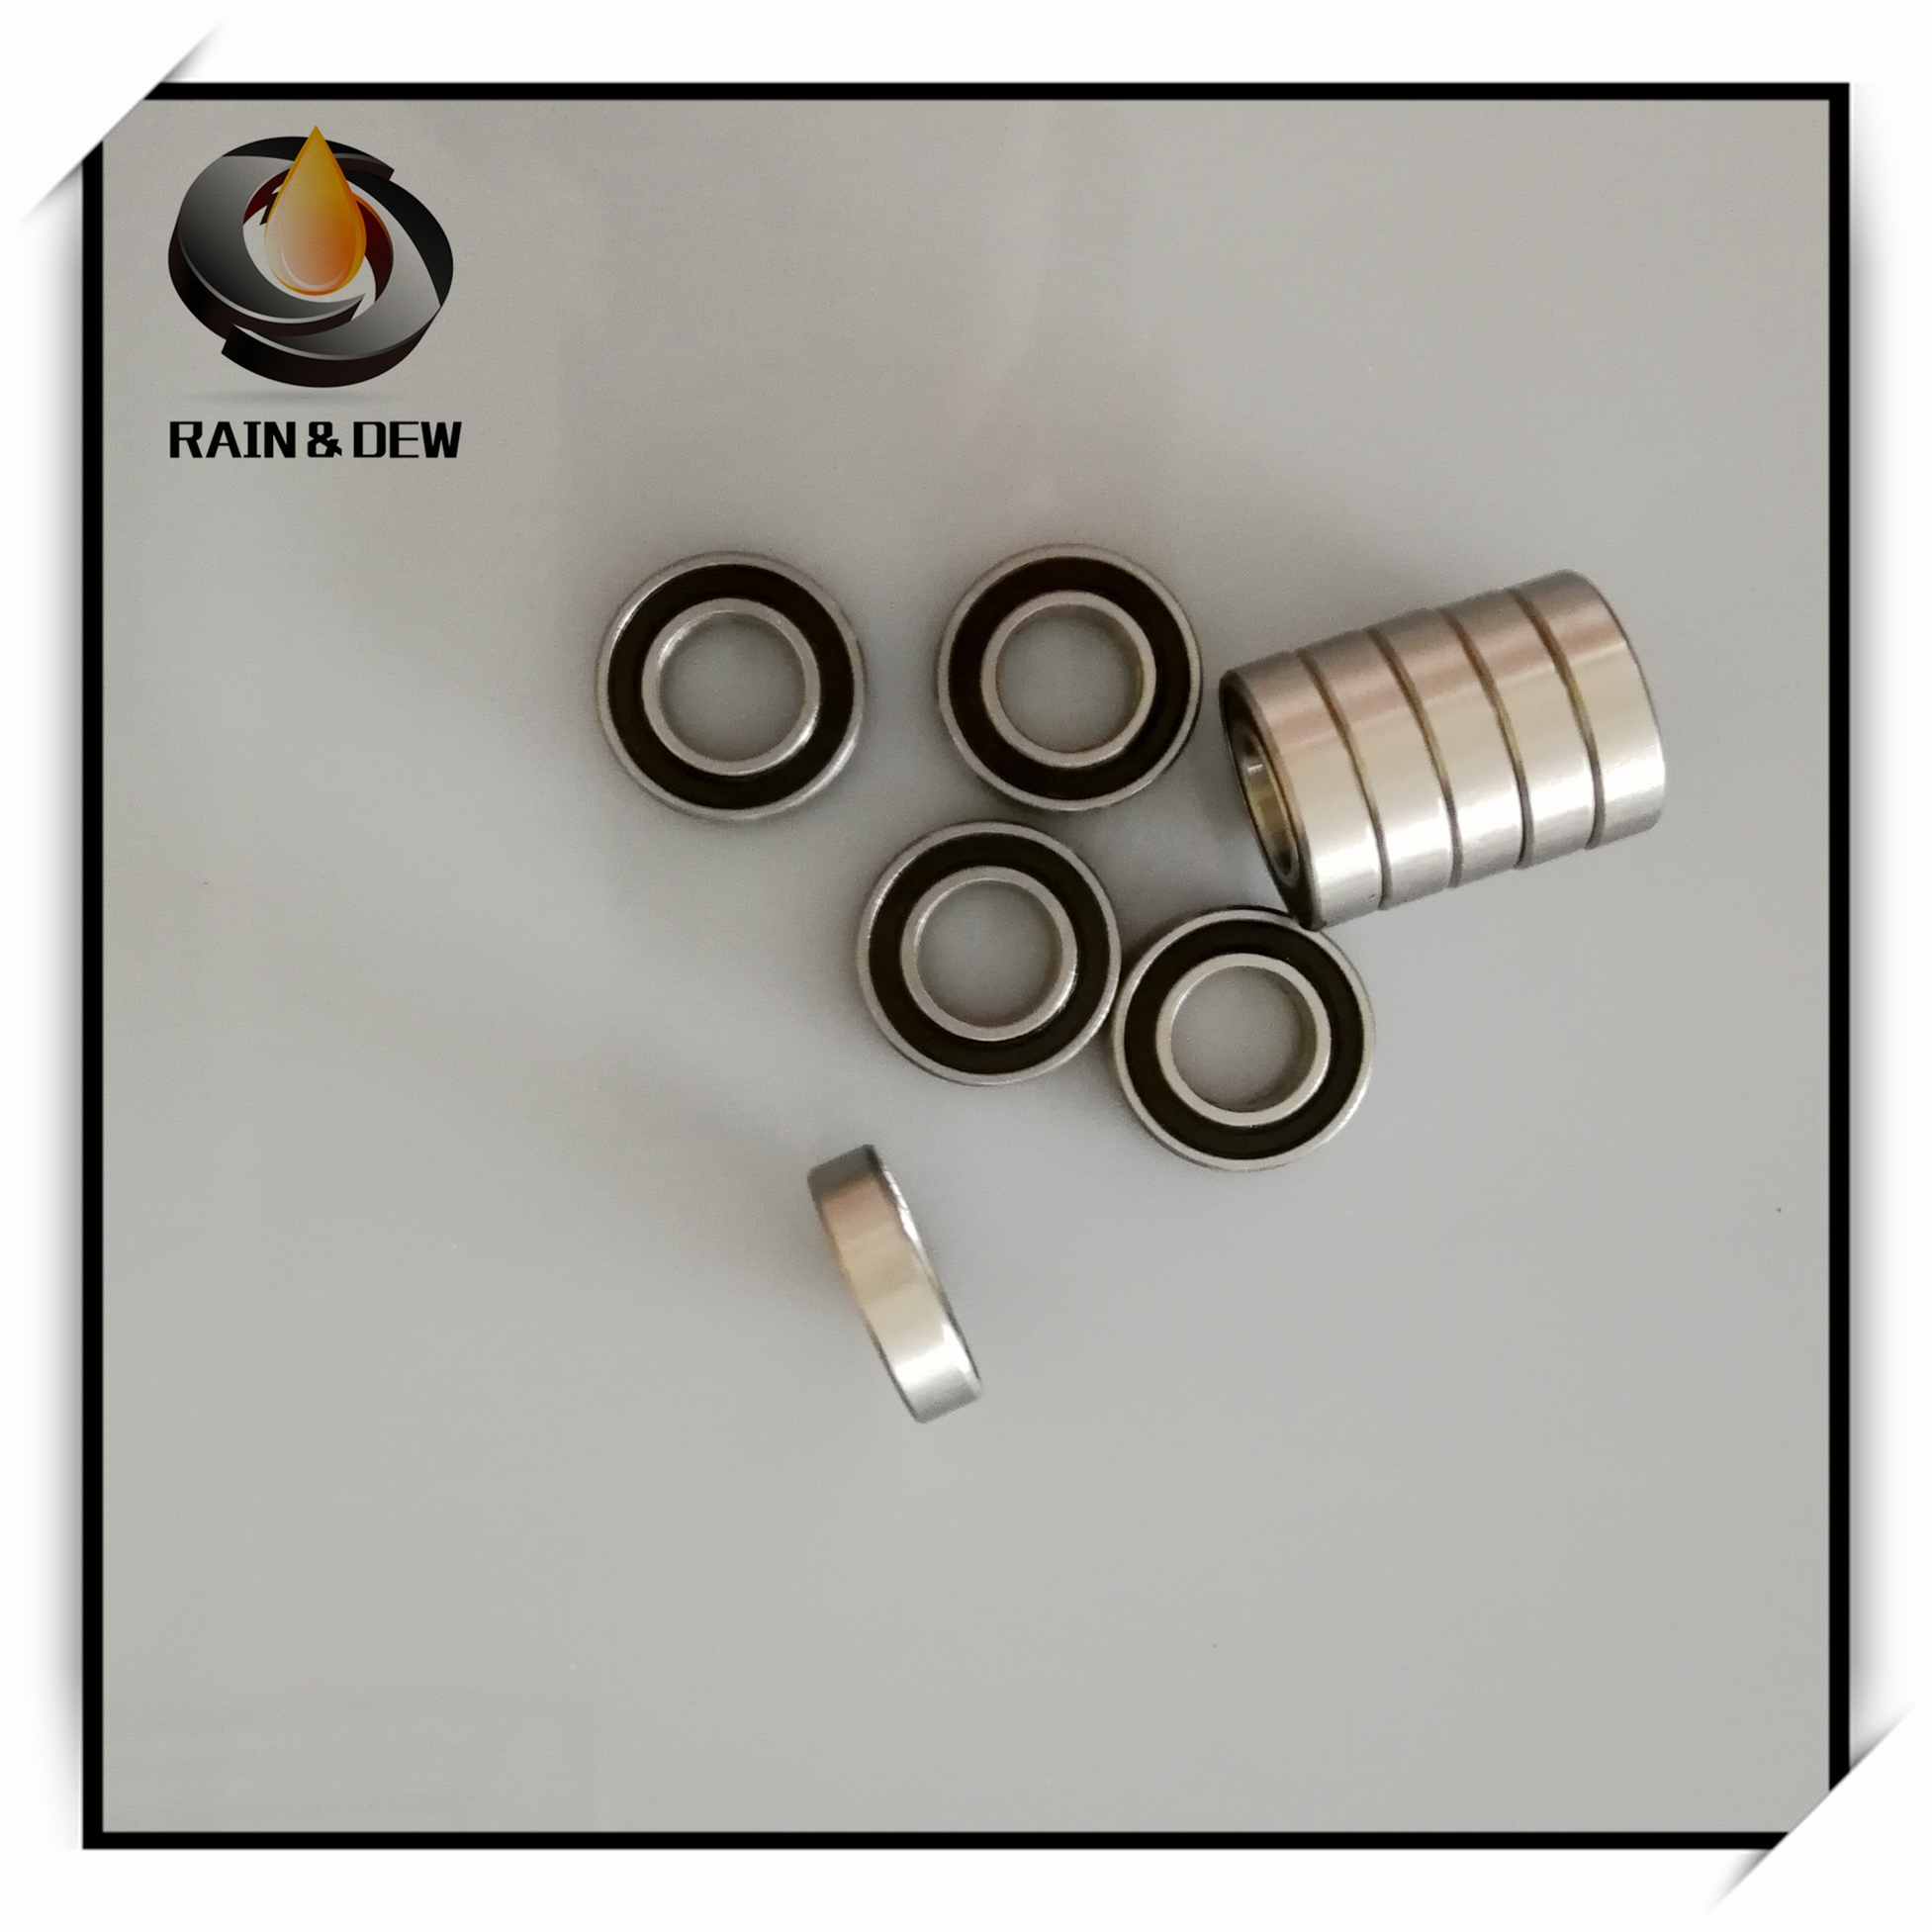 10Pcs S6802-2RS 15X24X5 mm Stainless Steel Ball <font><b>Bearing</b></font> <font><b>6802RS</b></font> Ball <font><b>Bearing</b></font> Anti rust Bicycle <font><b>Bearing</b></font> 6802 image